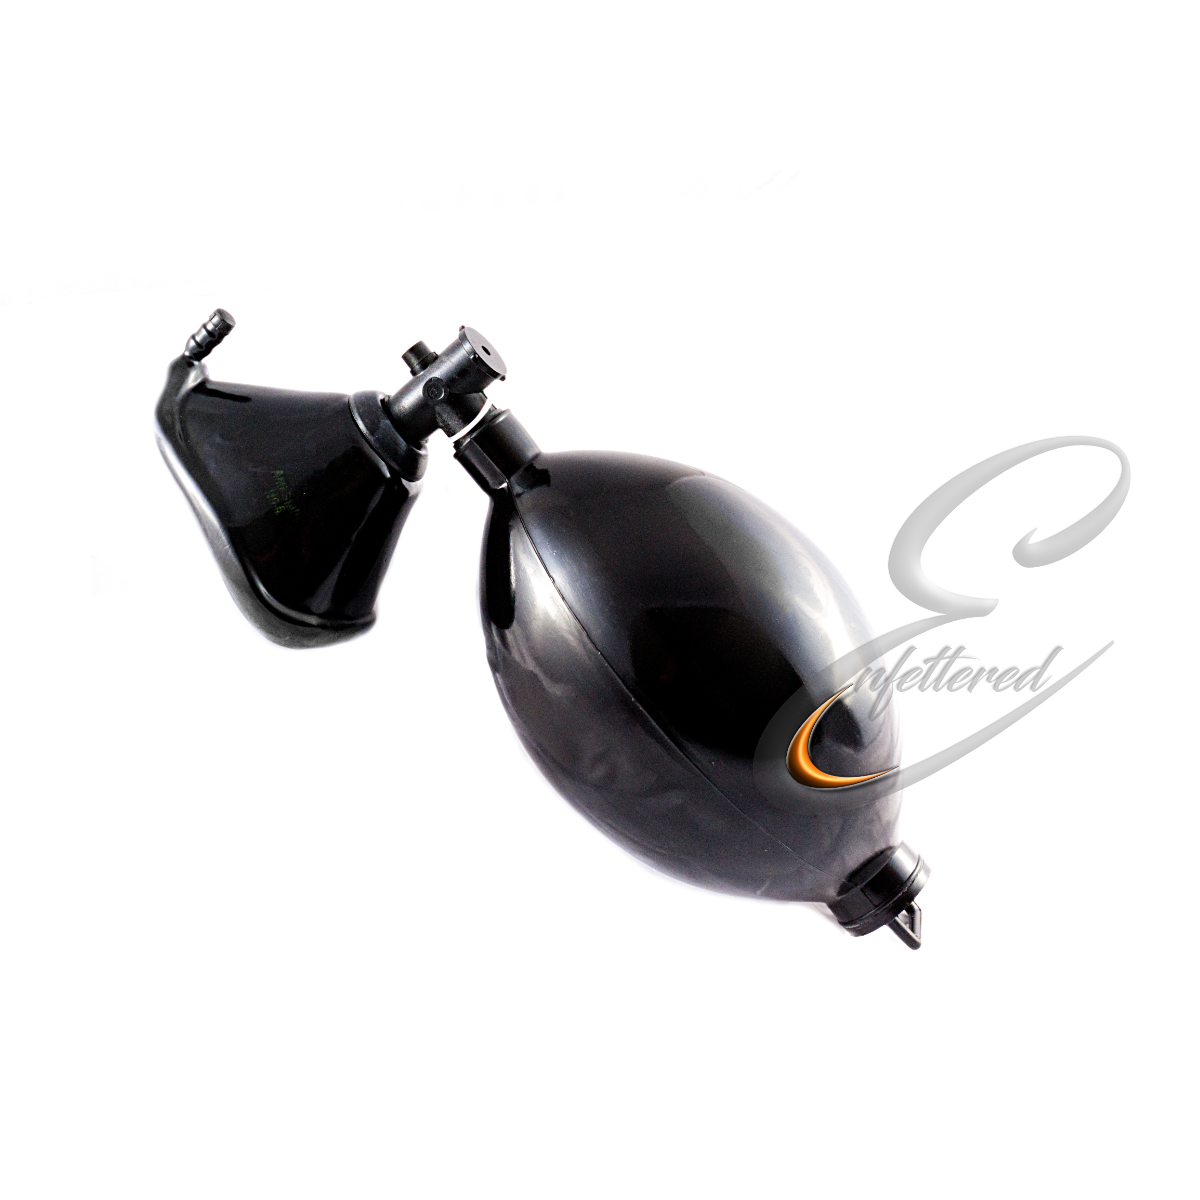 Enfettered Respirator Mask Set with Bellows